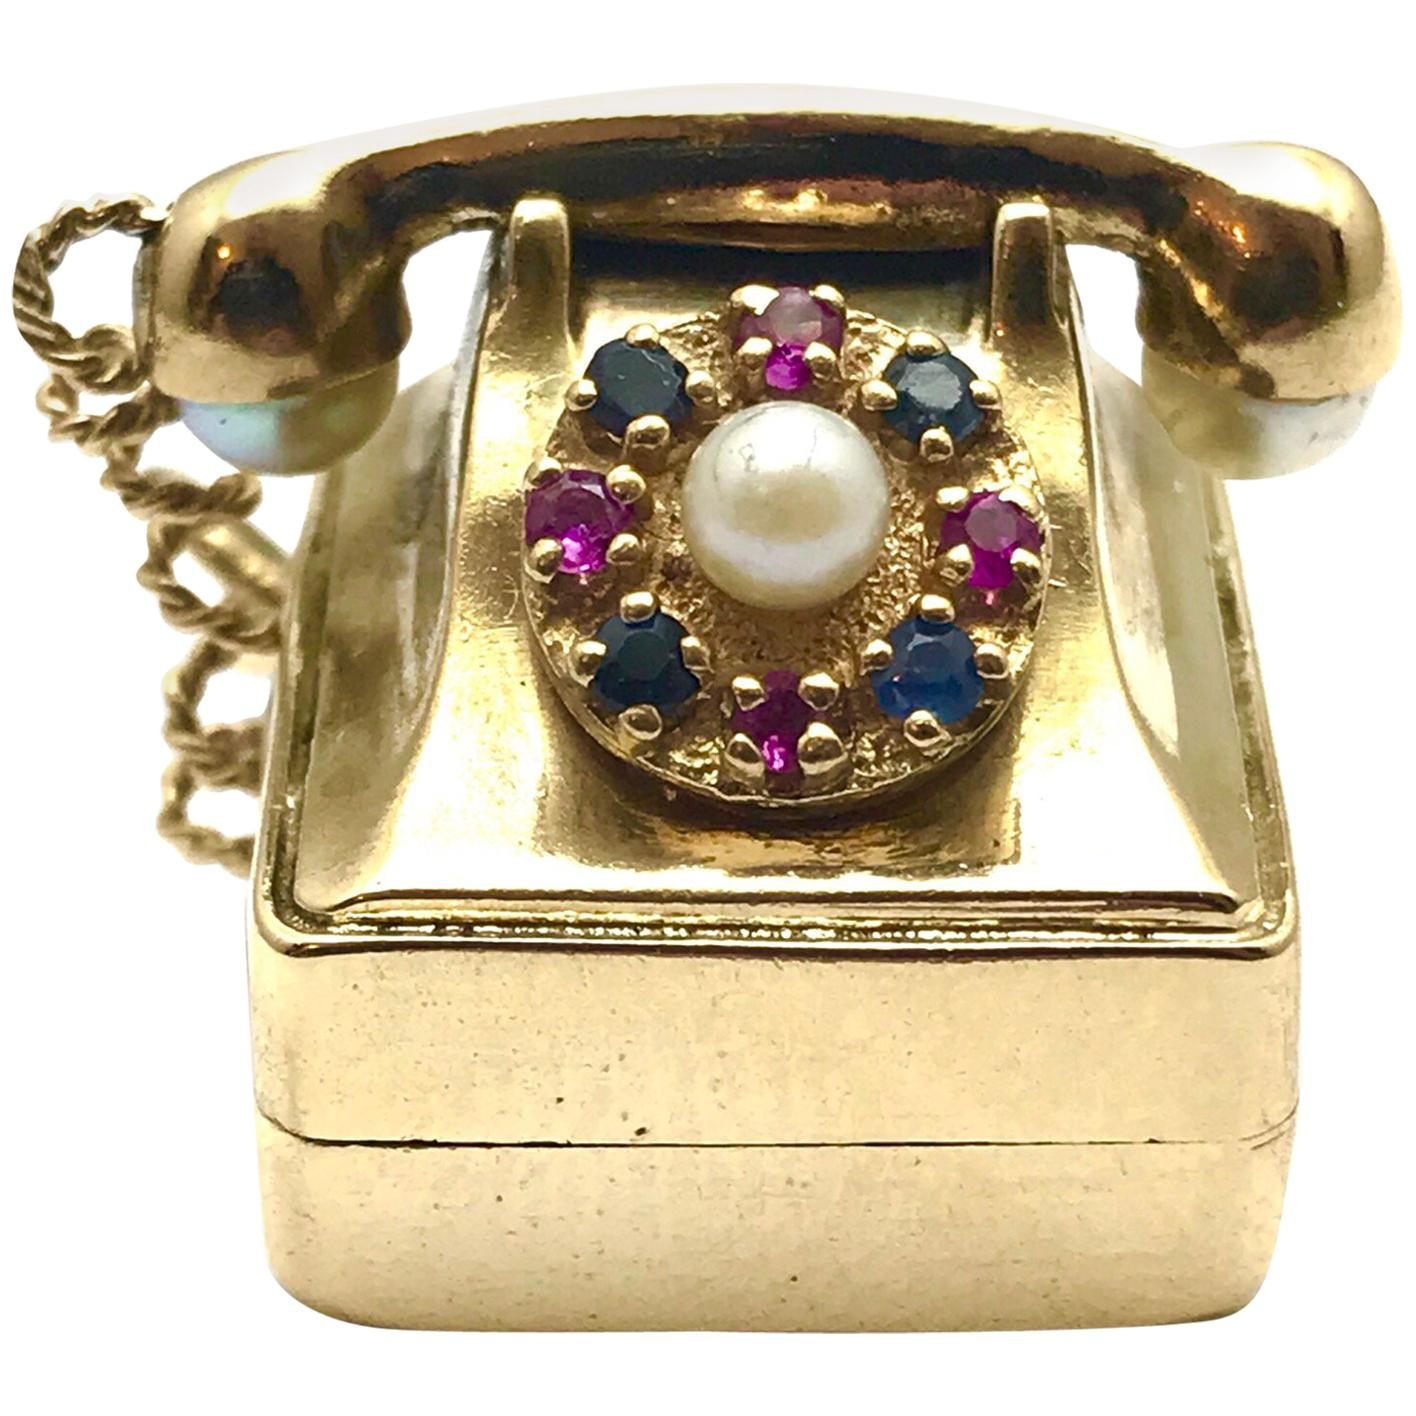 hight resolution of pearl ruby and sapphire yellow gold musical rotary phone charm at 1stdibs